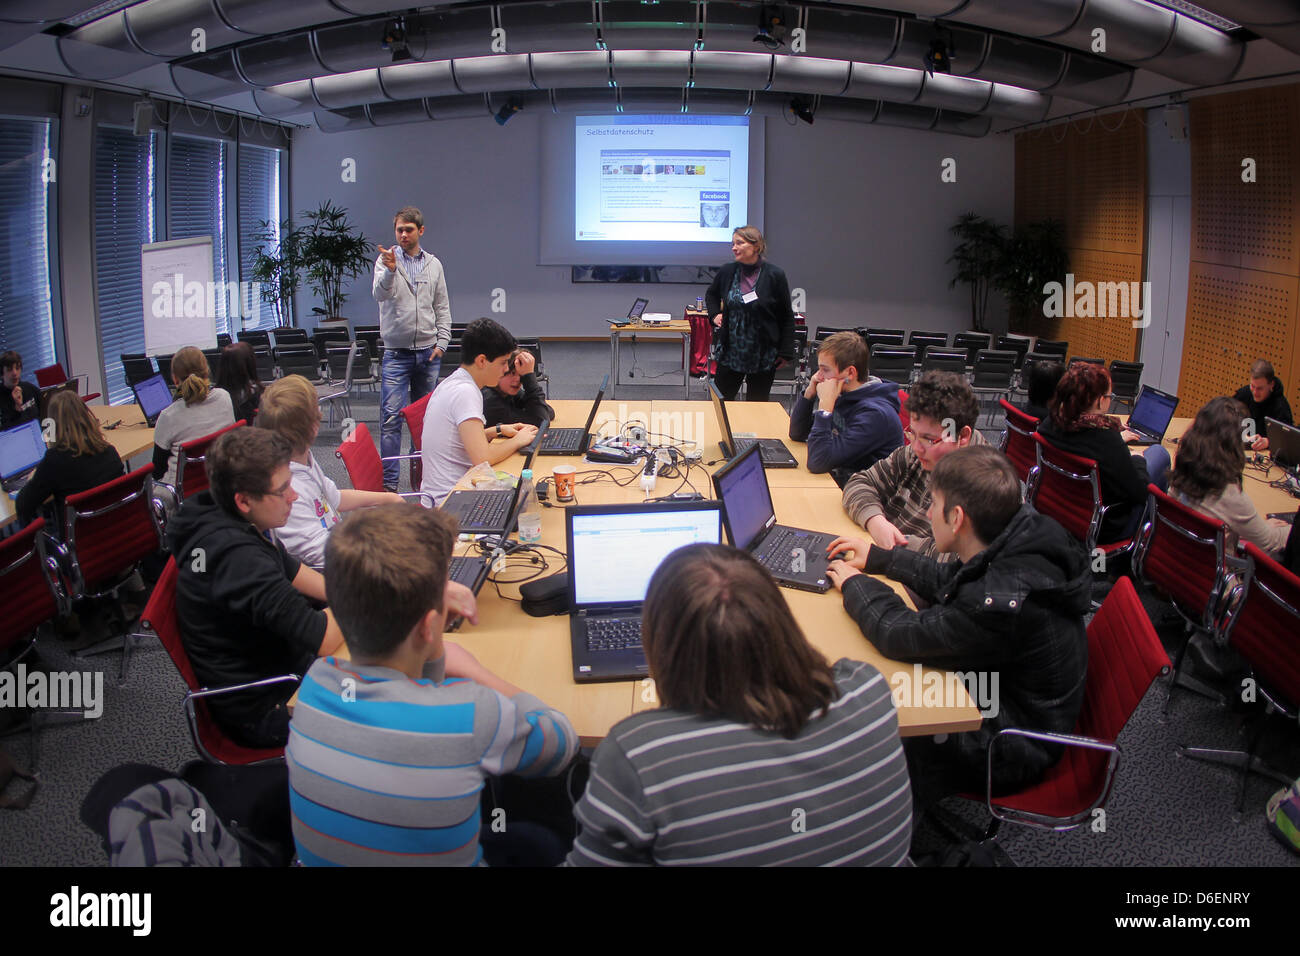 Pupils from various schools in Rhineland-Palatinate take part in 'Safer Internet Day' at the conference - Stock Image